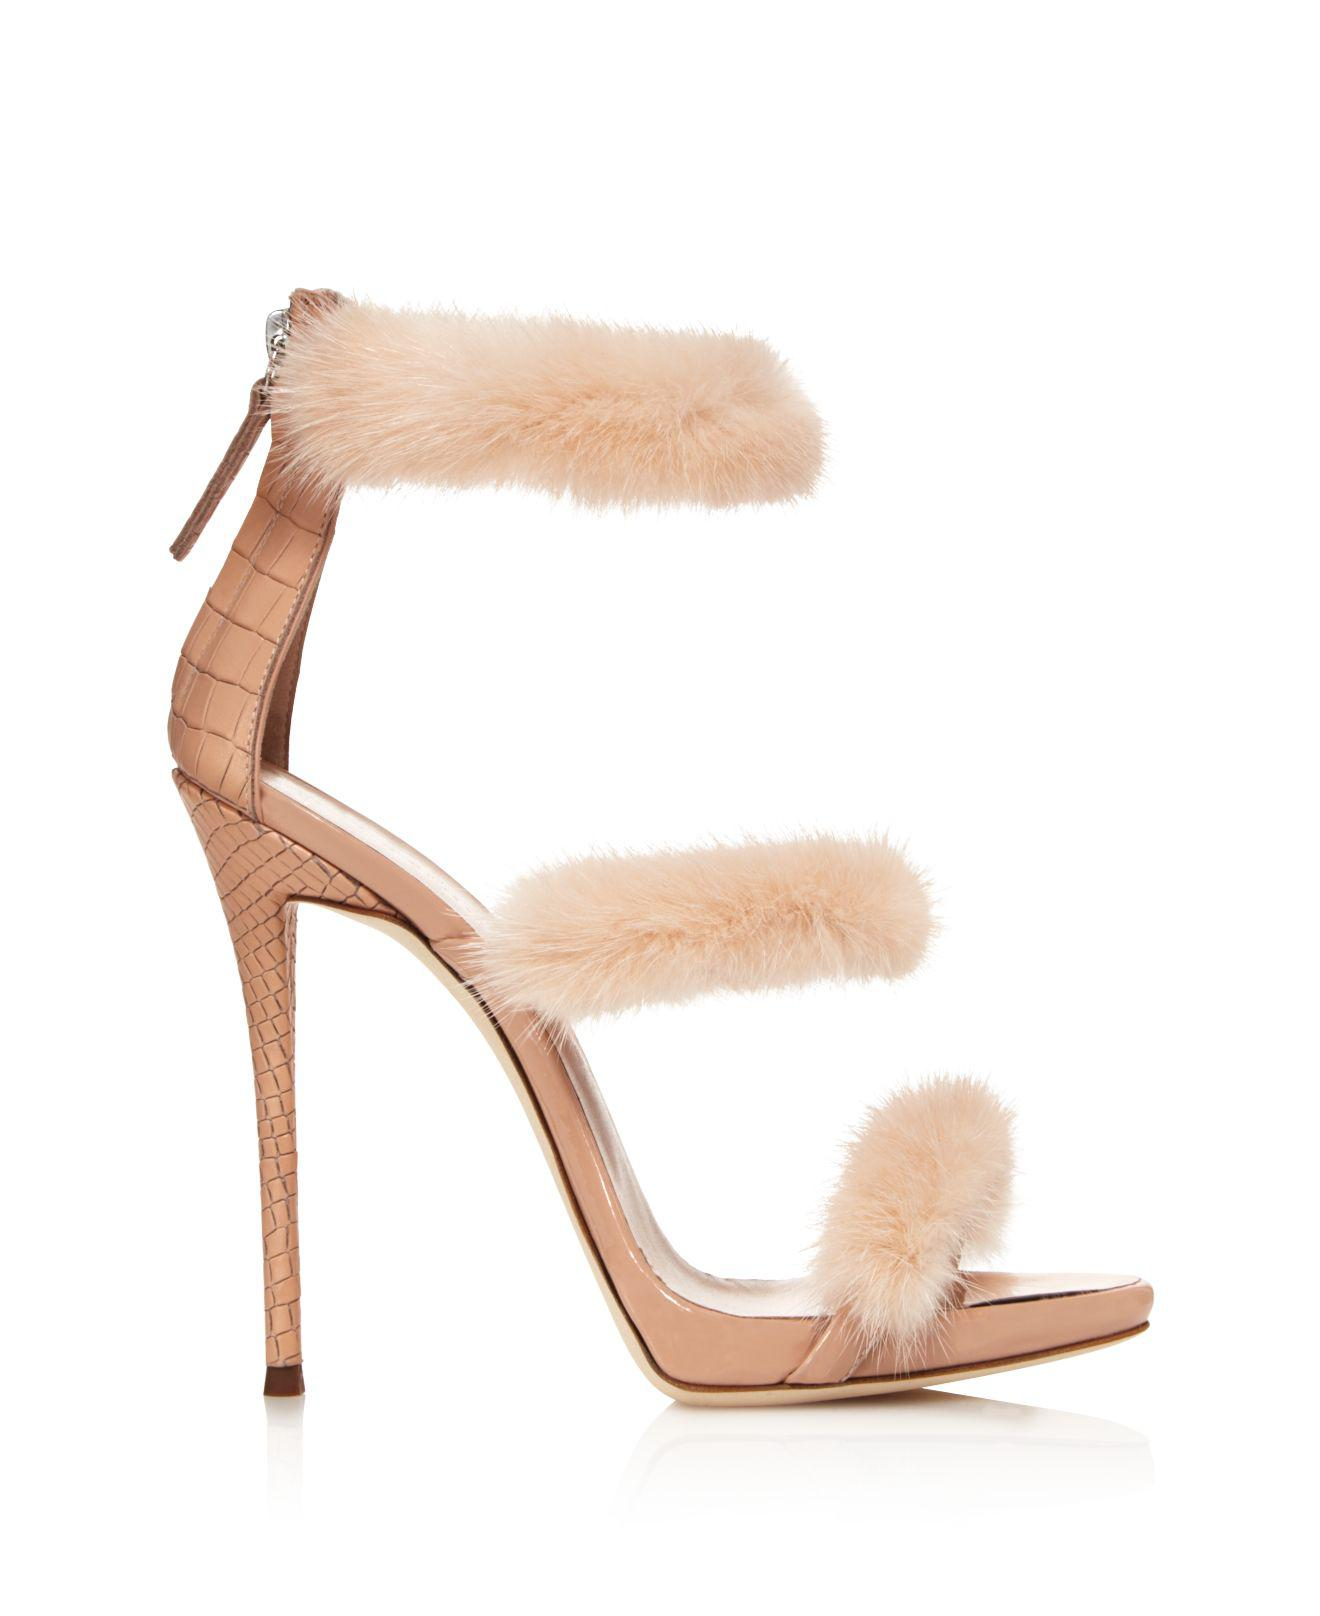 eb5153d154c99 Giuseppe Zanotti Triple Band Mink Fur High Heel Sandals - Lyst